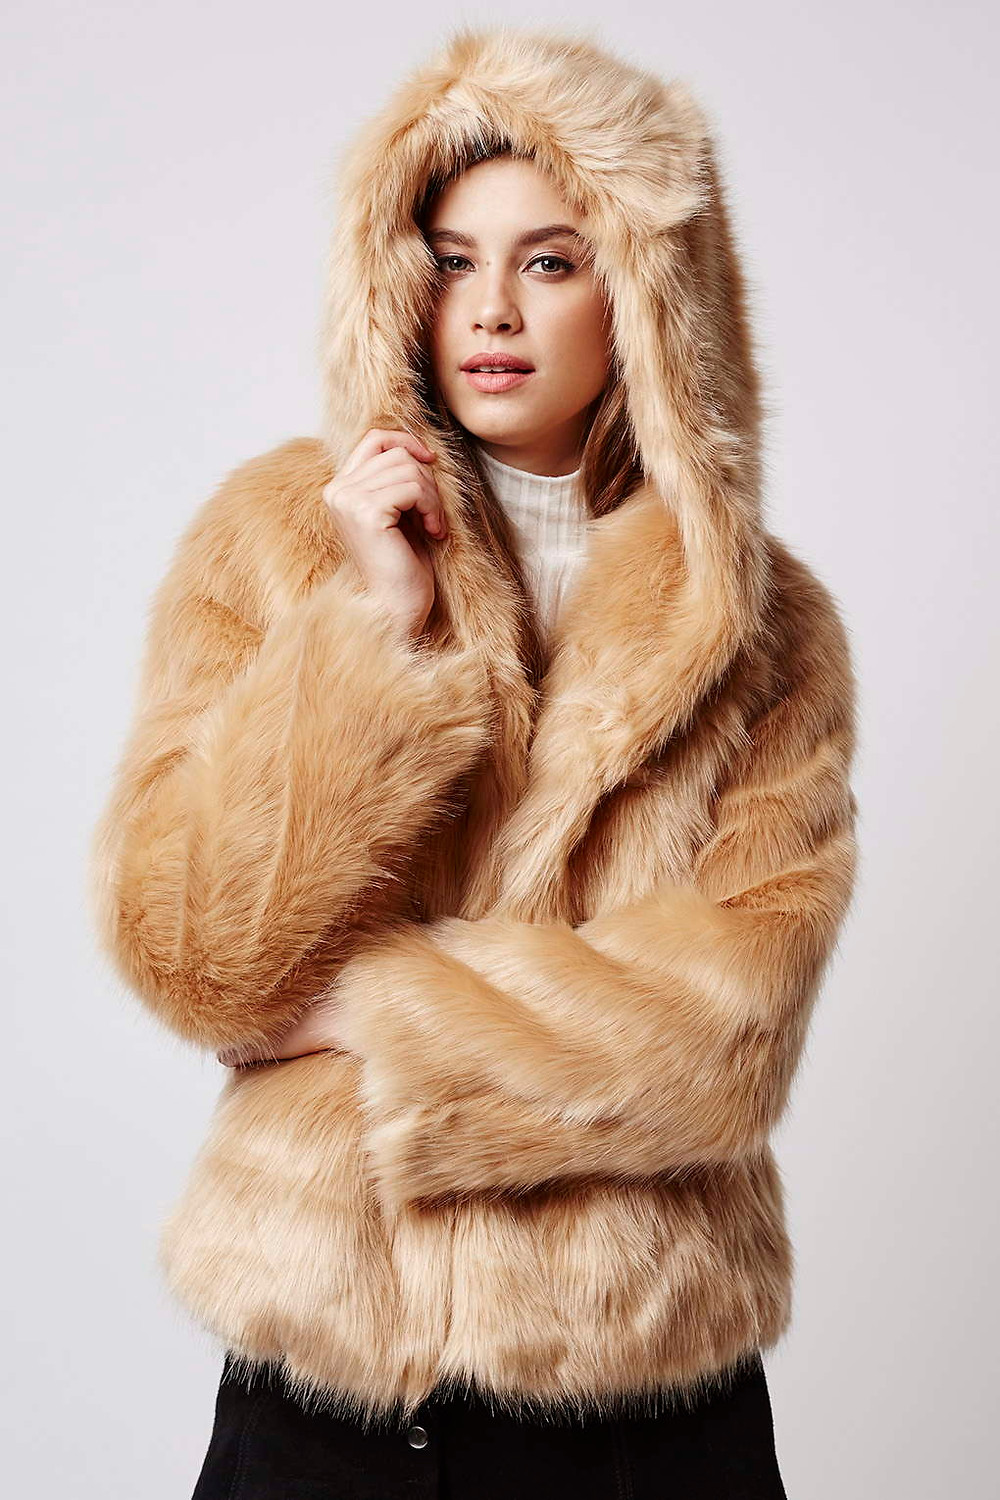 Topshop Luxe Faux Fur Hooded Coat-$170